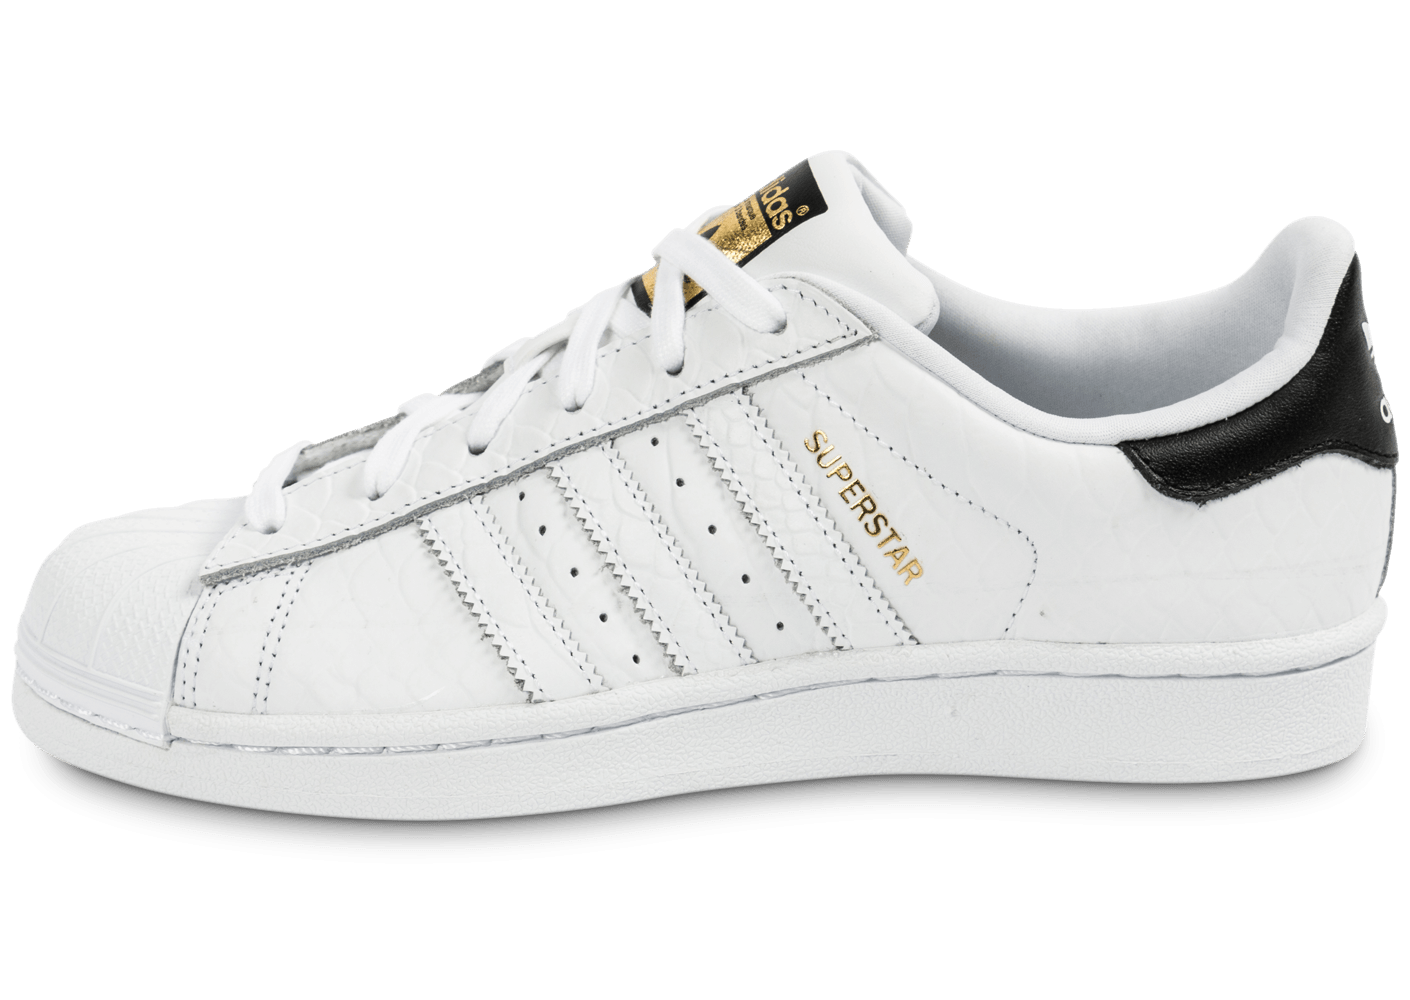 Chaussures Superstar Blanche Animal Junior Chausport Adidas odCxerB